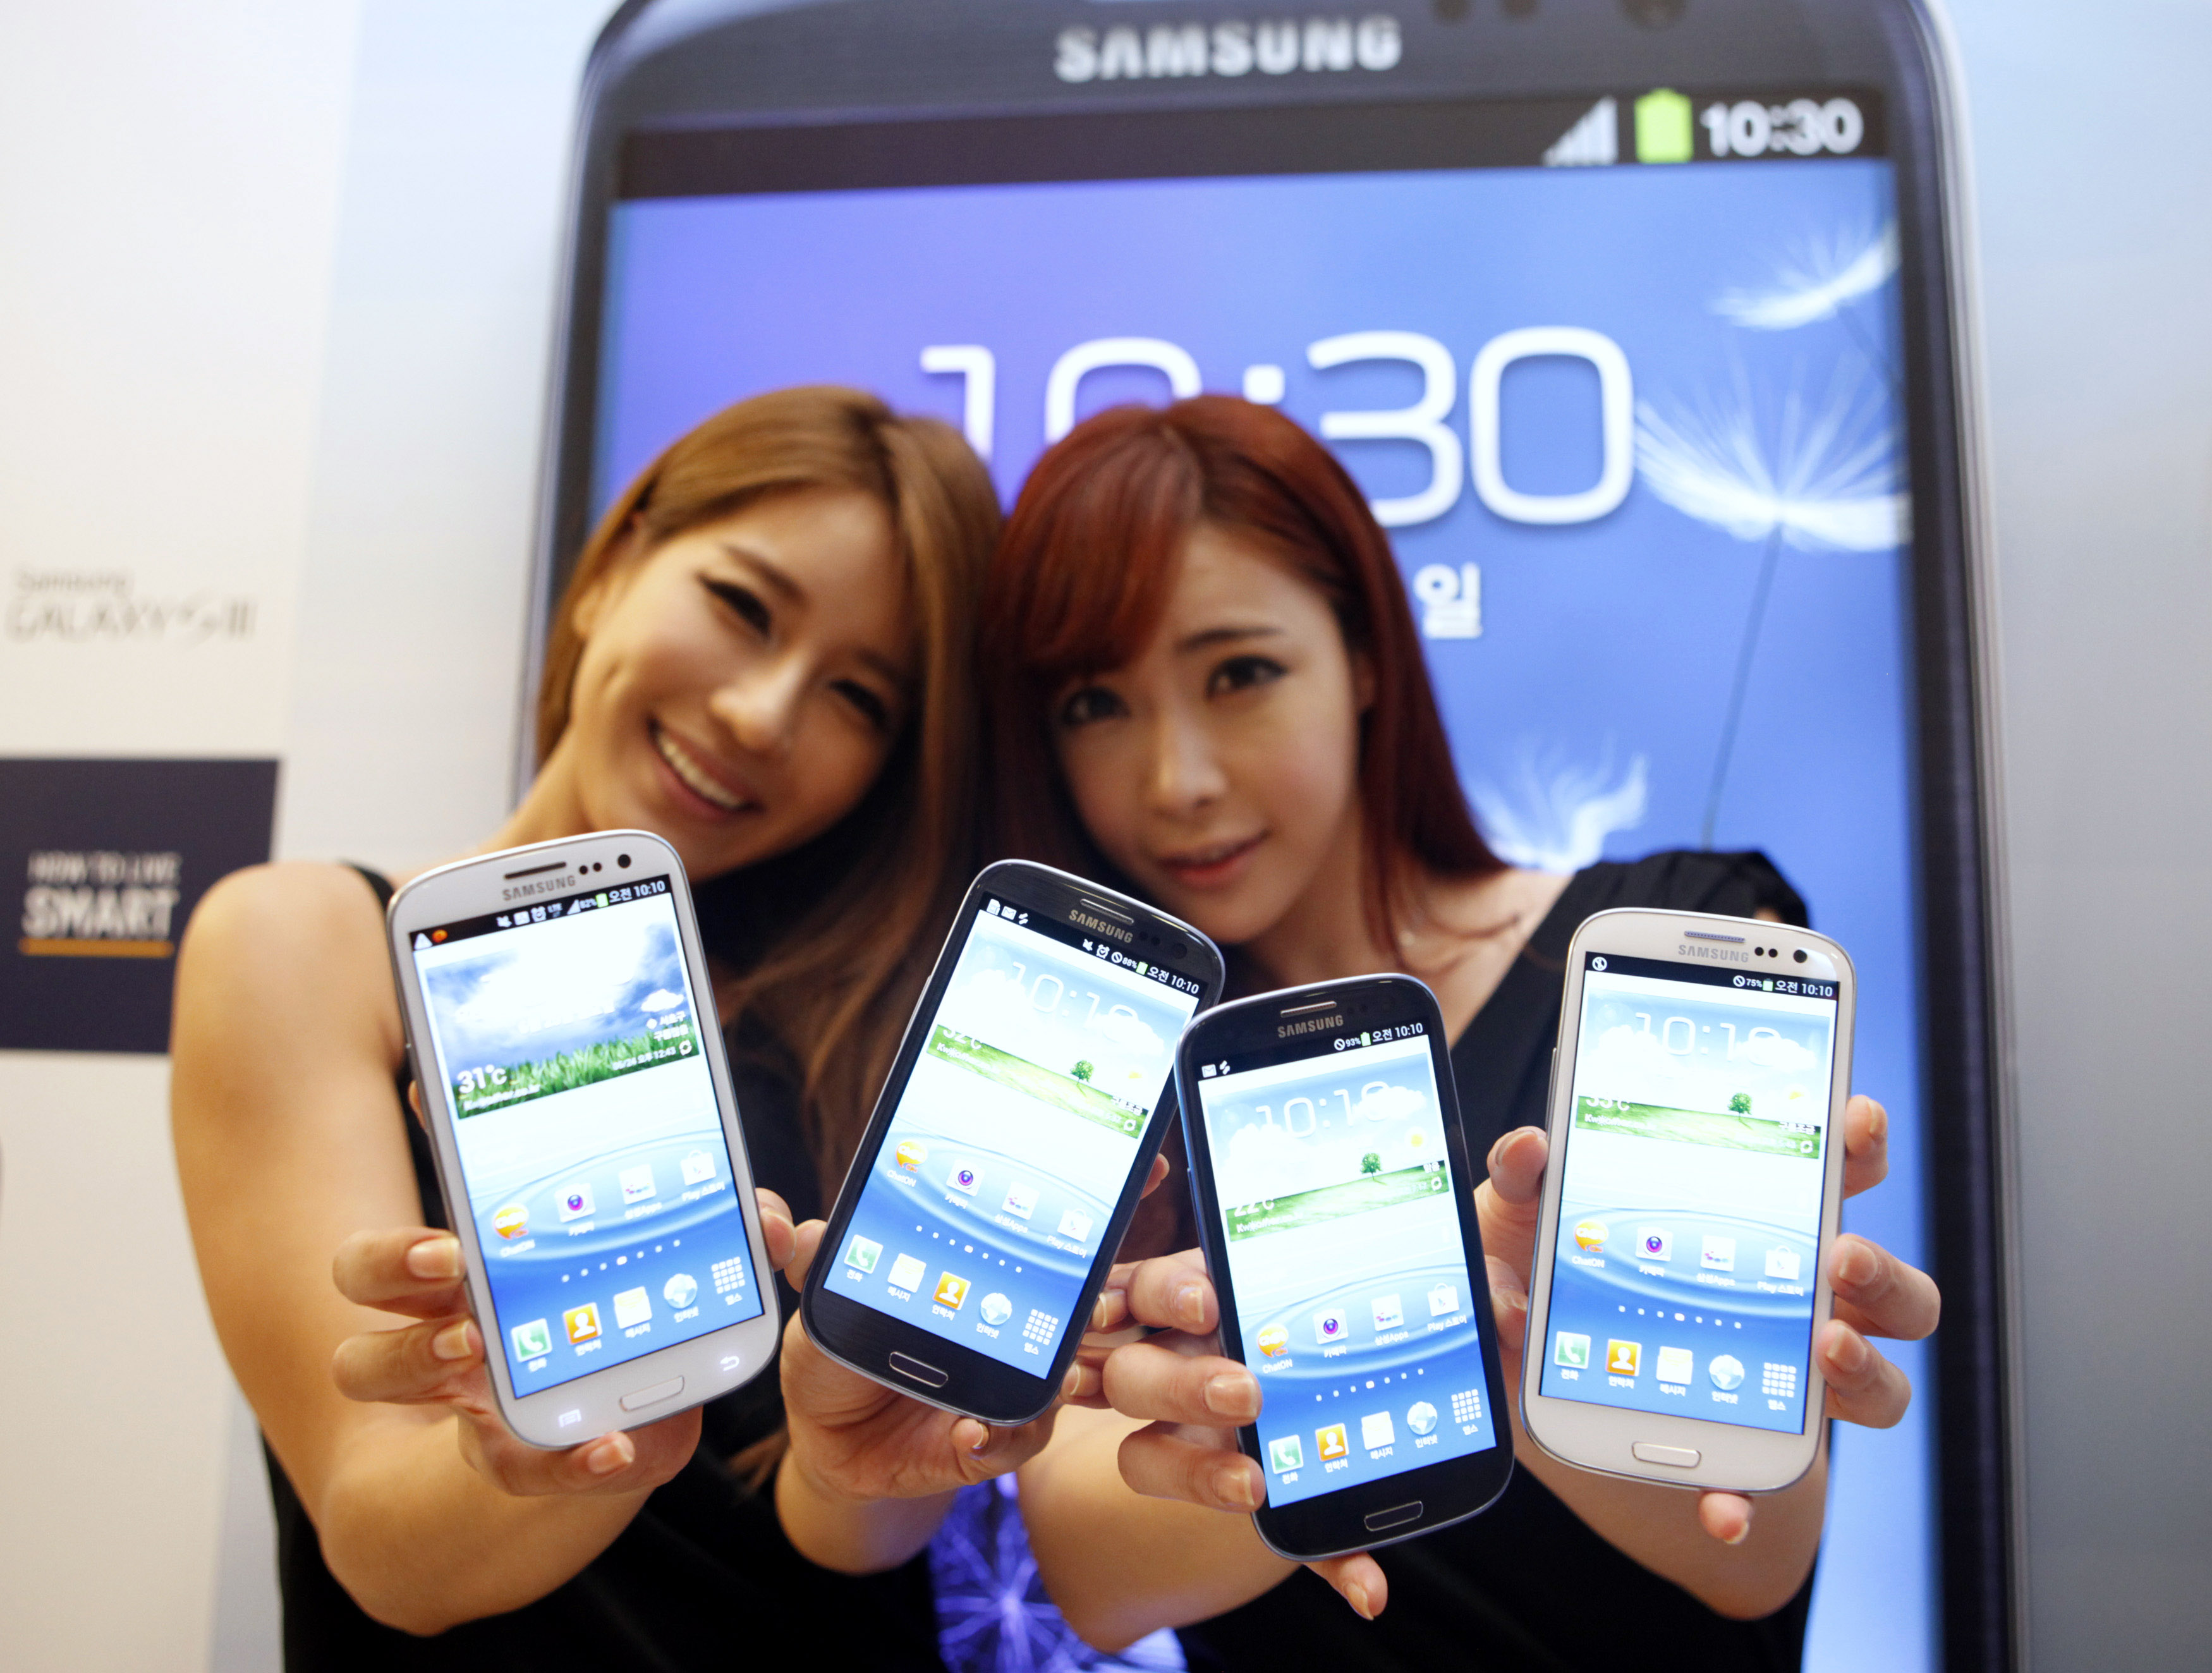 Models hold new Galaxy S III devices as they pose for photographers during an event to launch the smartphone in the local market at the headquarters of Samsung Electronics in Seoul